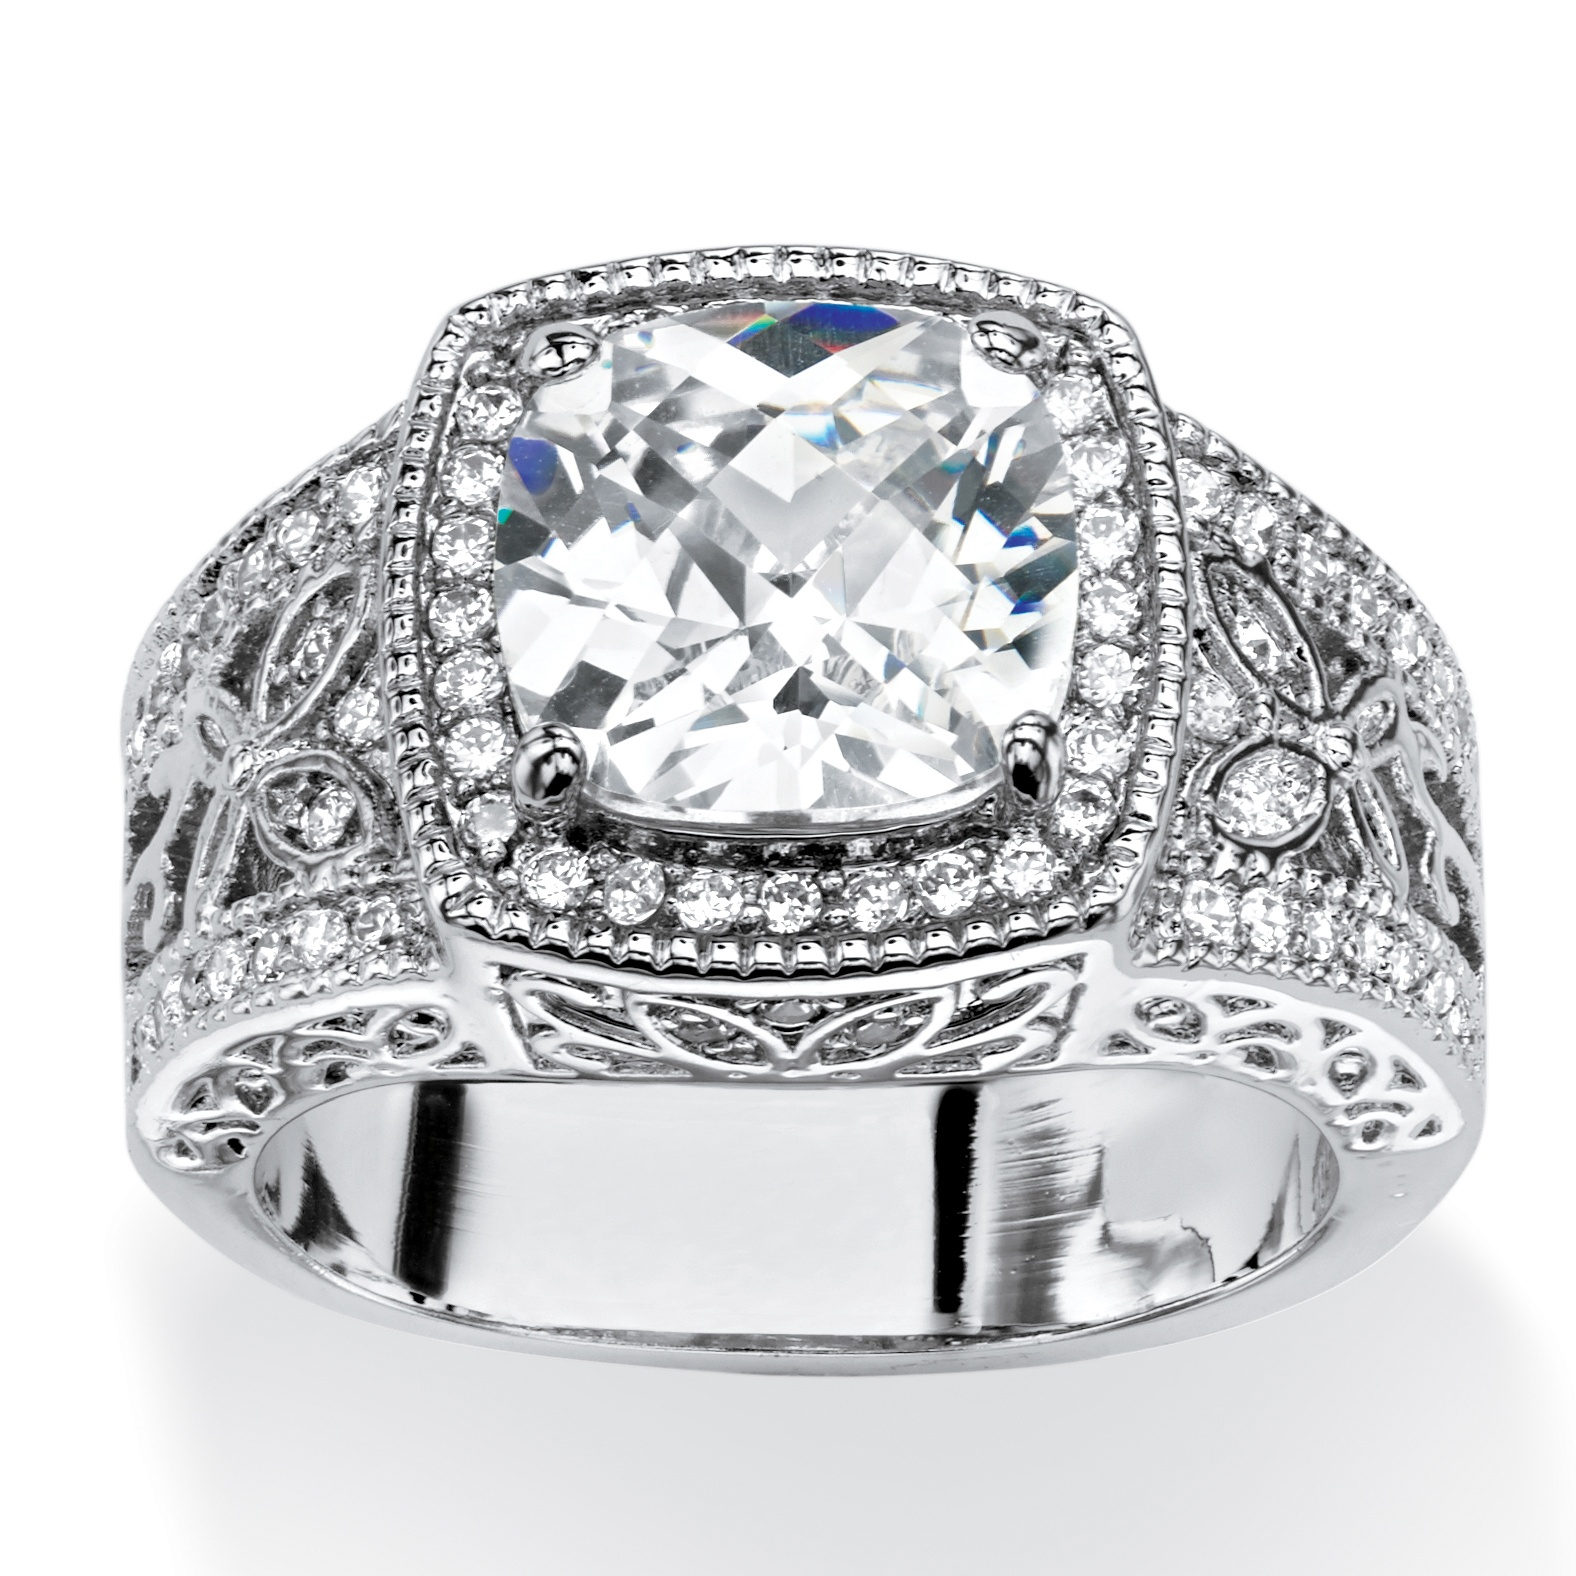 3.27 TCW Cushion-Cut Cubic Zirconia Halo Ring with Butterfly and Cubic Zirconia Accents.